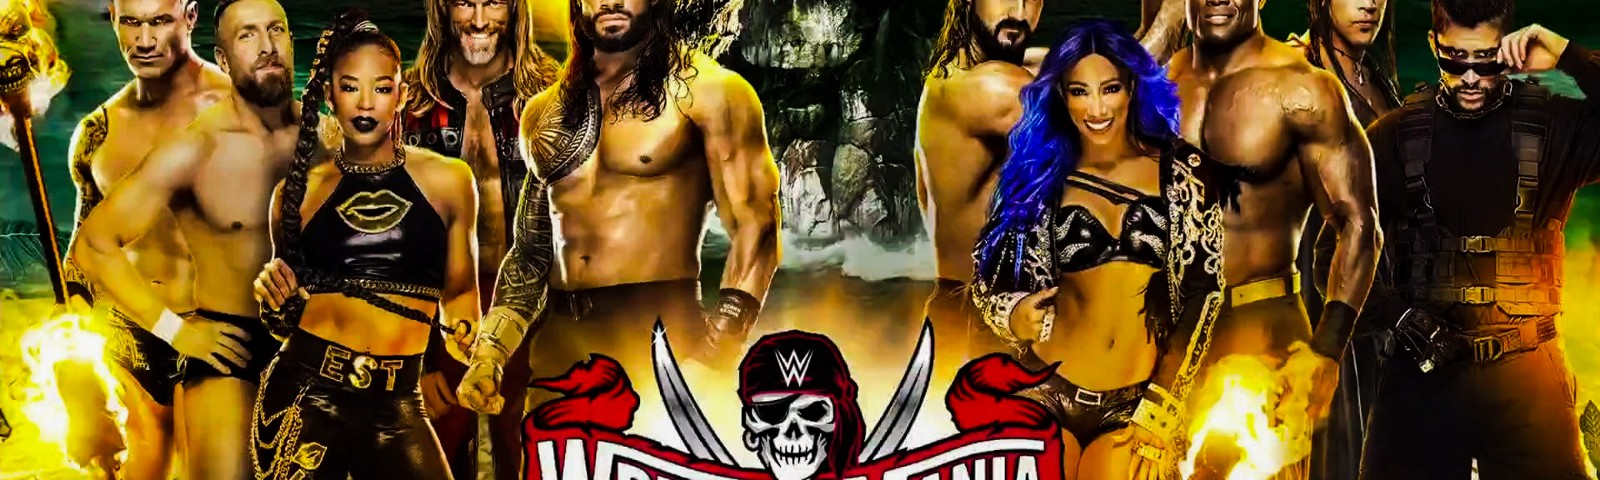 WWE WrestleMania 37 Results: Reviews on Every Match